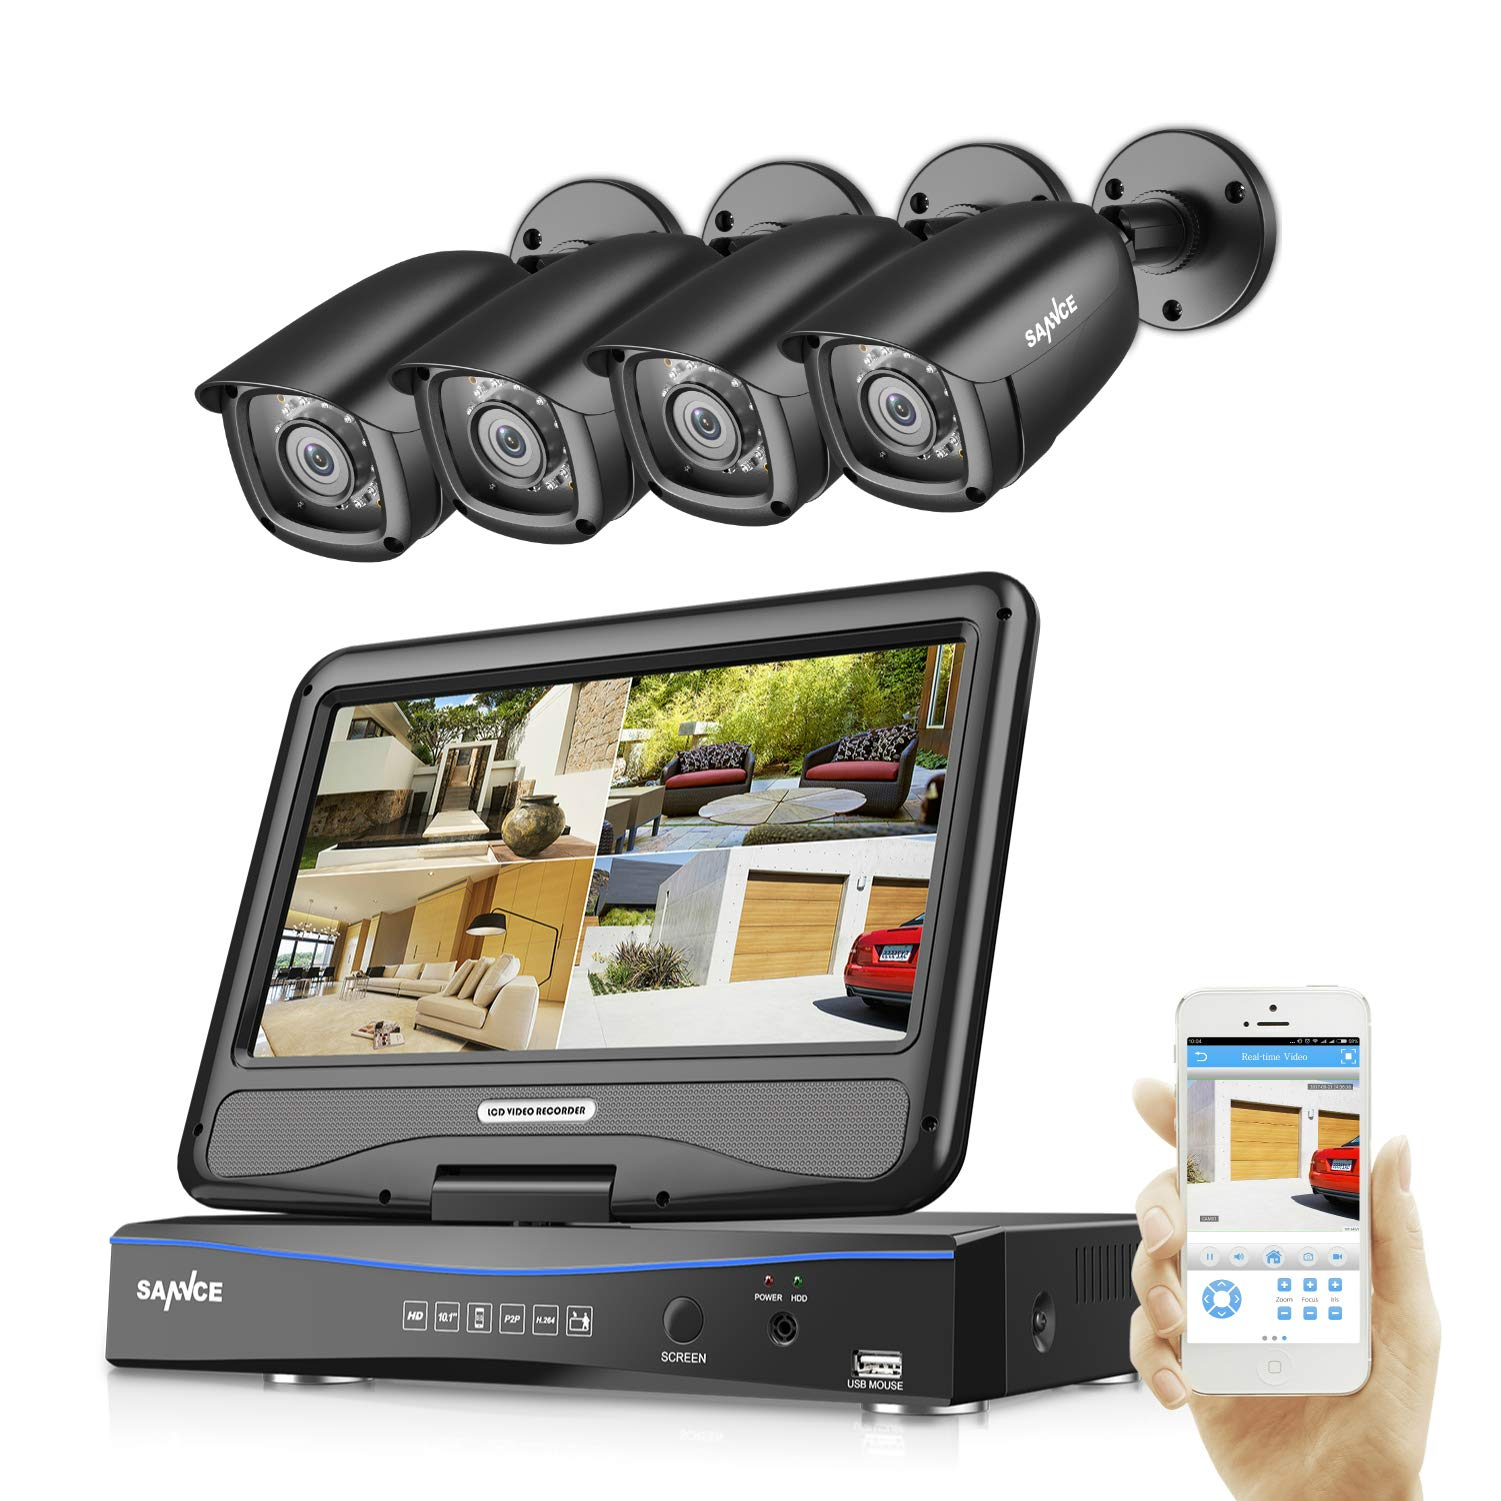 SANNCE 4CH All-in-One 1080P DVR with 10'' LCD Monitor Wired Security Camera System with 4 Weatherproof Indoor Outdoor Day Night Vision Video Surveillance Camera Plug and Play (No Hard Drive) by SANNCE